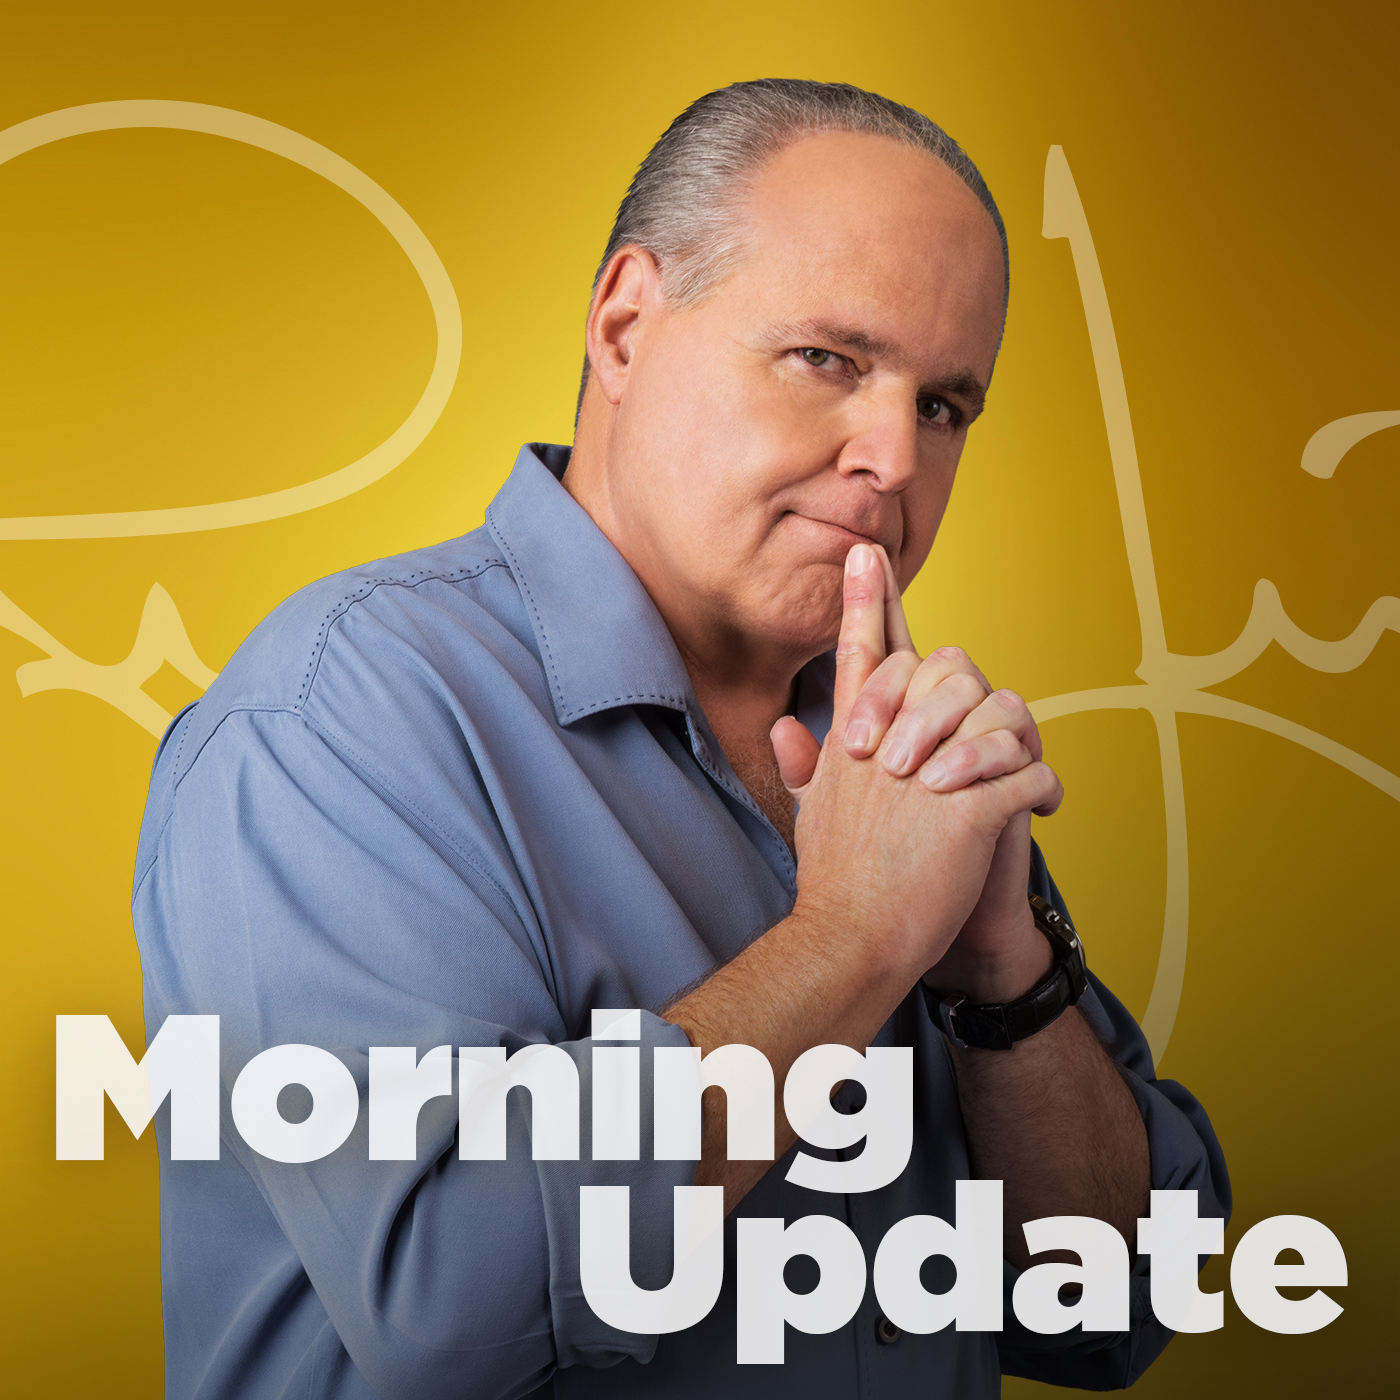 Rush Limbaugh Dec 24, 2019